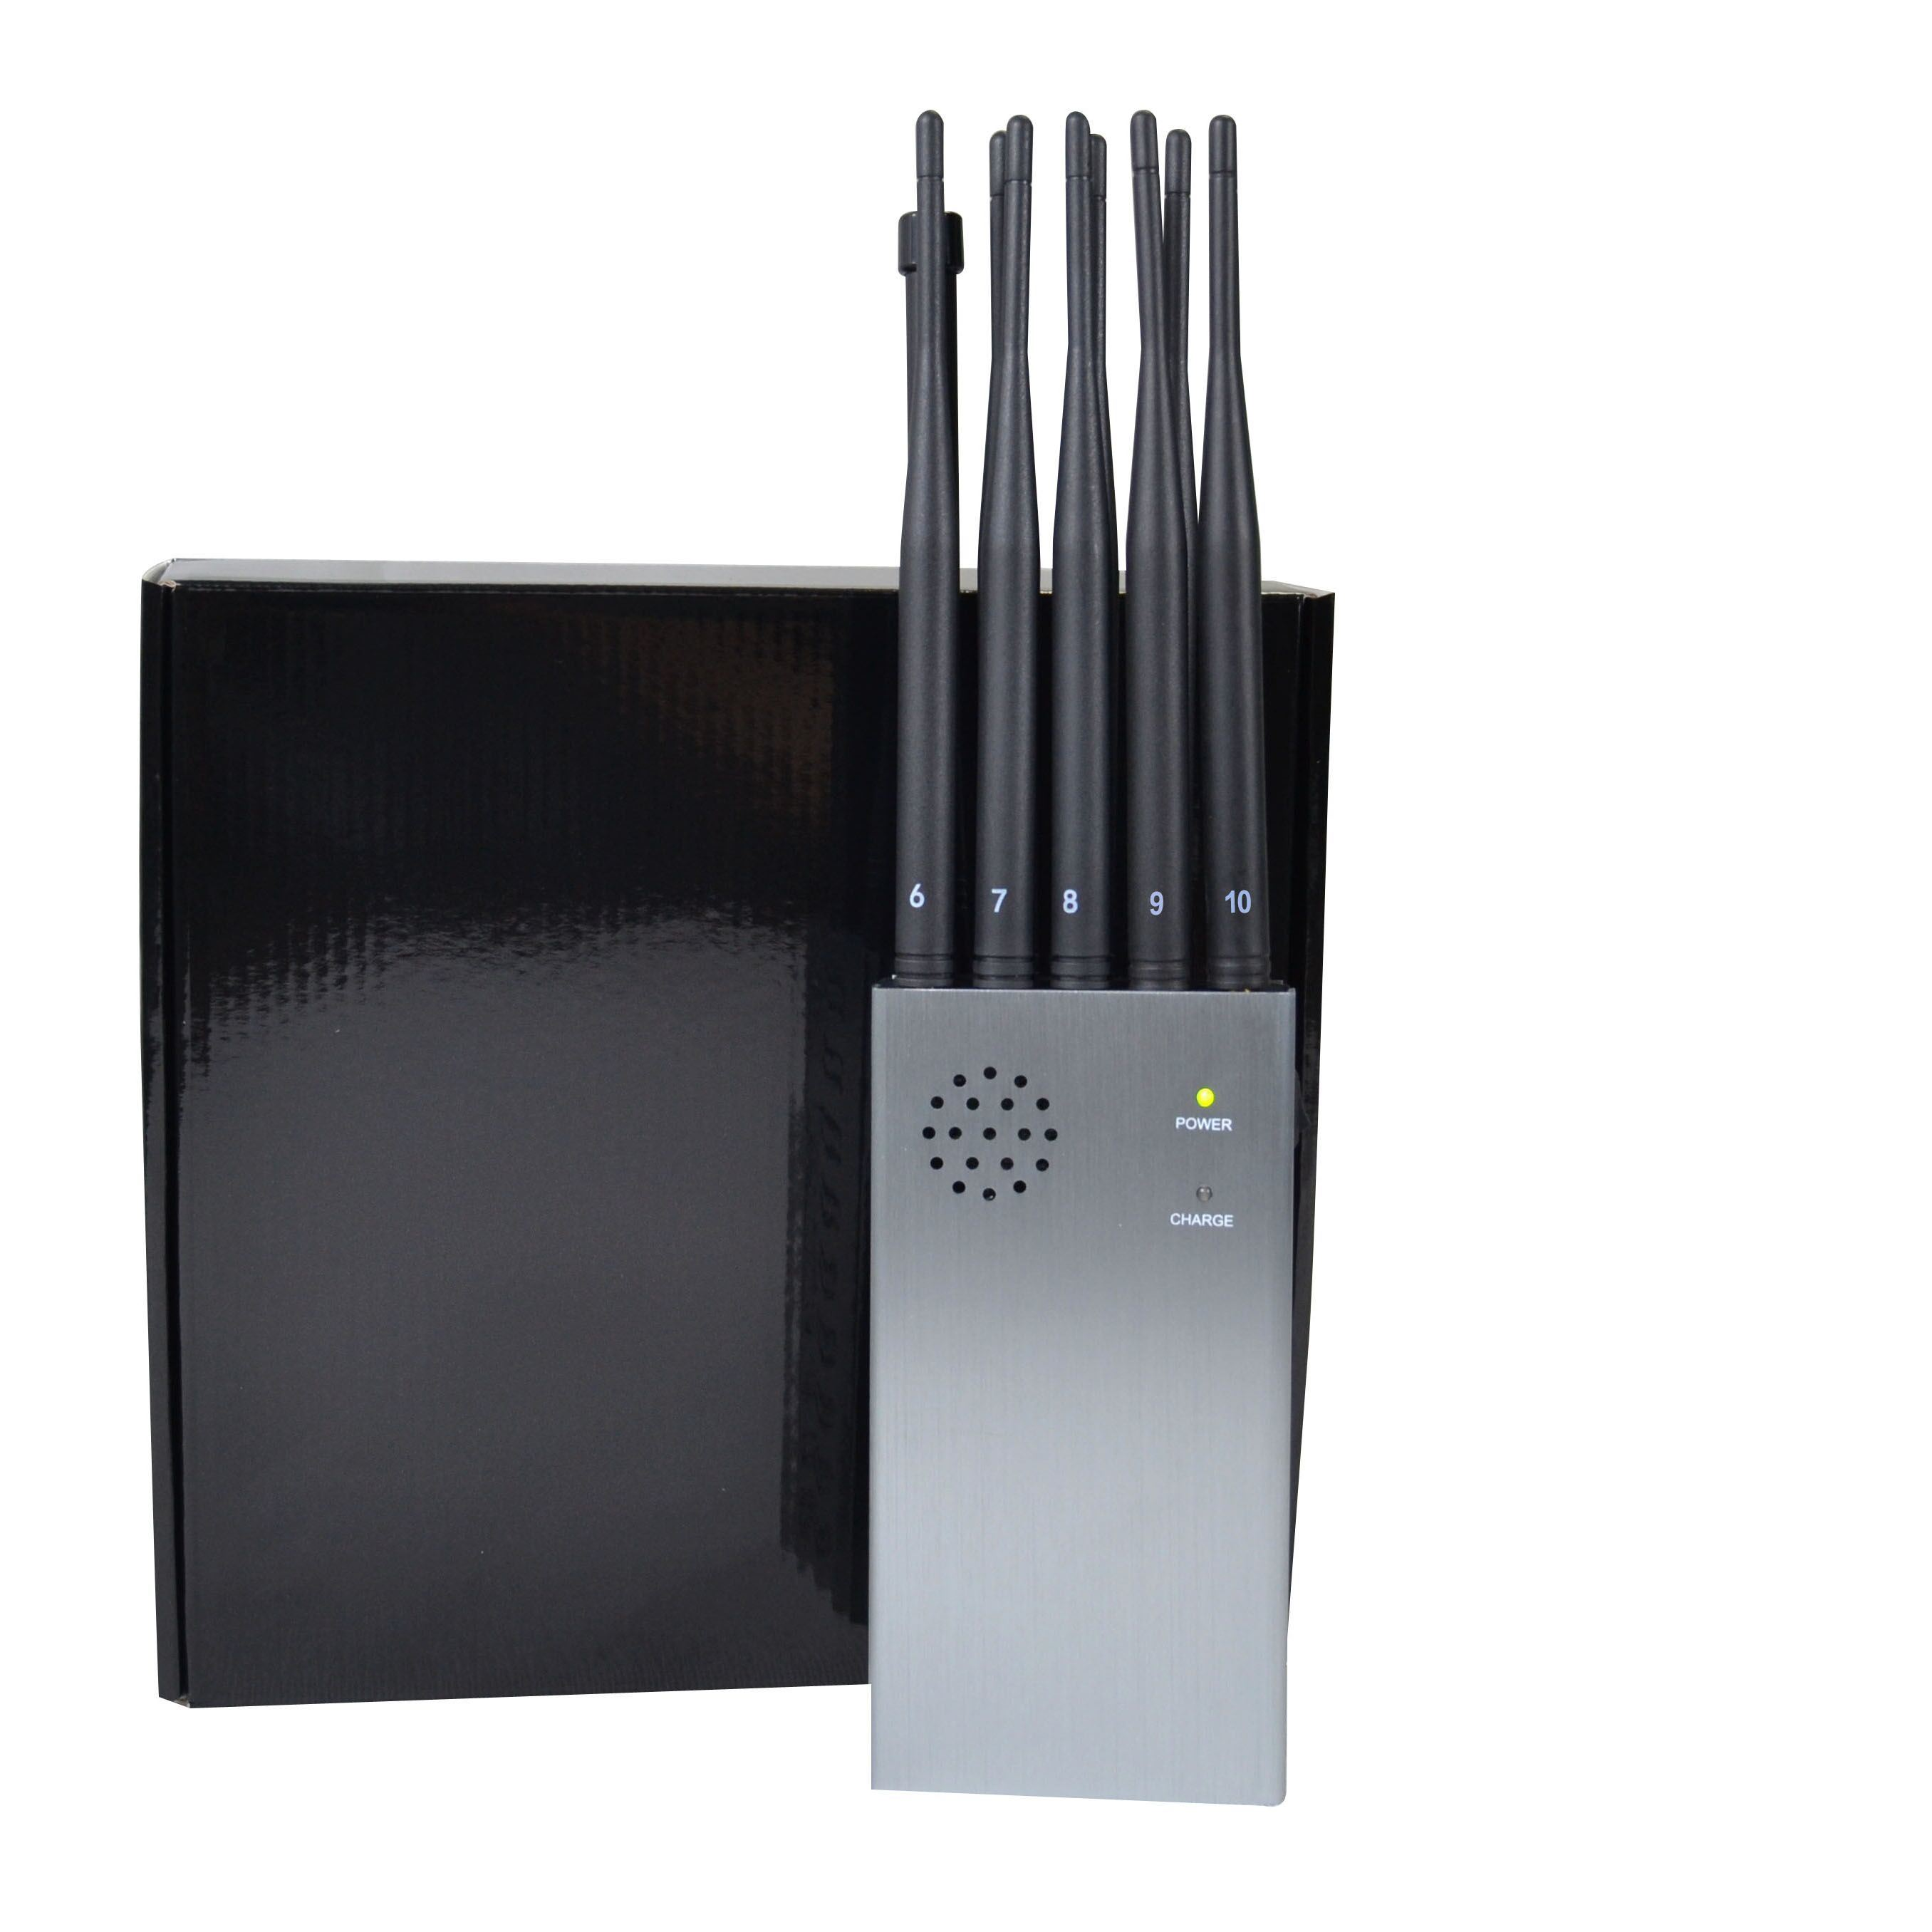 phone jammer lelong kereta - China High Power up to 8000mA Battery Portable Jammer for Military Using Including Lojack, 3G 4G 2g 5g Remote Control GPS Signals - China 8000mA Battery Jammer, Large Volume Power Signal Blocker